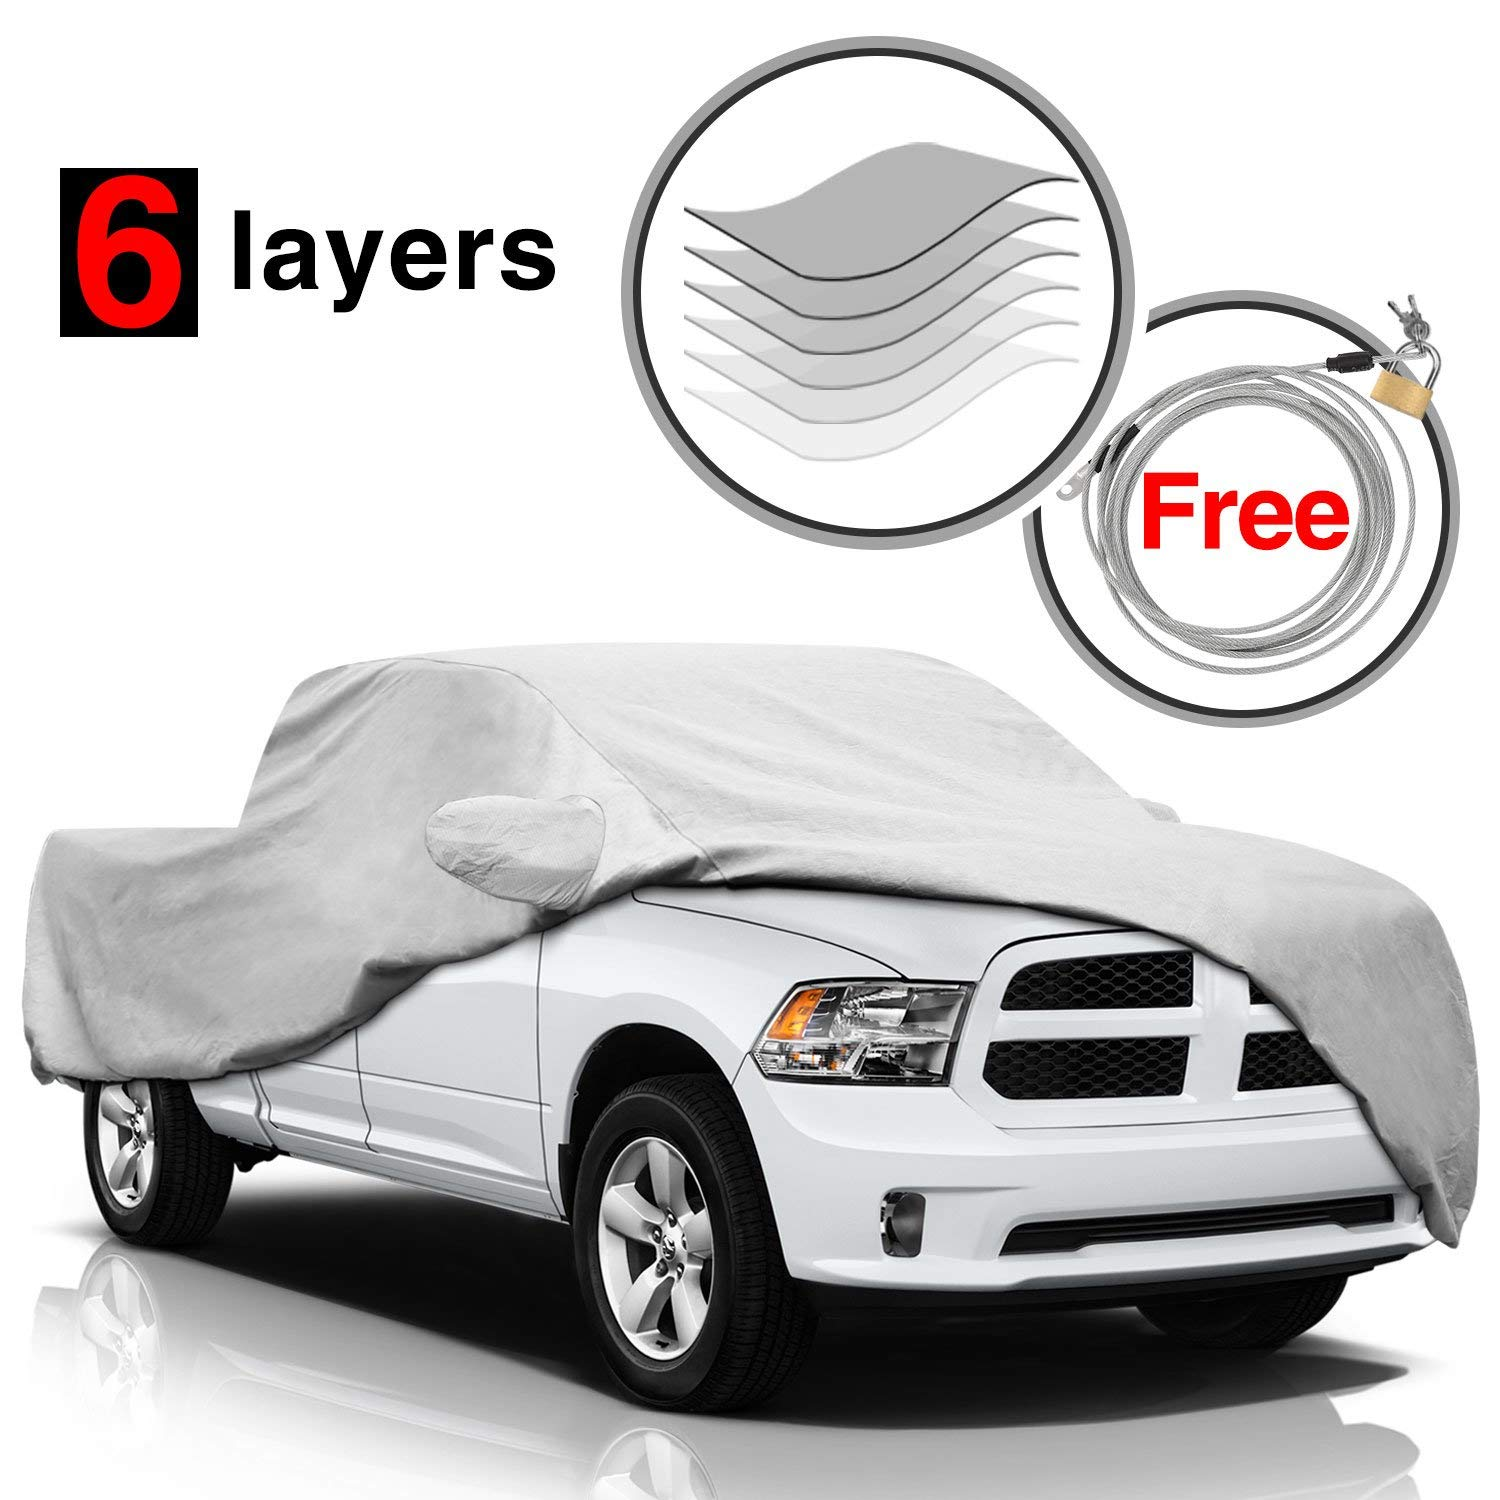 Cheap Dodge Truck Cover Find Deals On Line At. Get Quotations Kakit 6 Layers Dodge Ram Truck Cover For 1500 2500 3500 Crew Cab 1998. Dodge. Dodge Lcf Series Trucks Wiring At Scoala.co